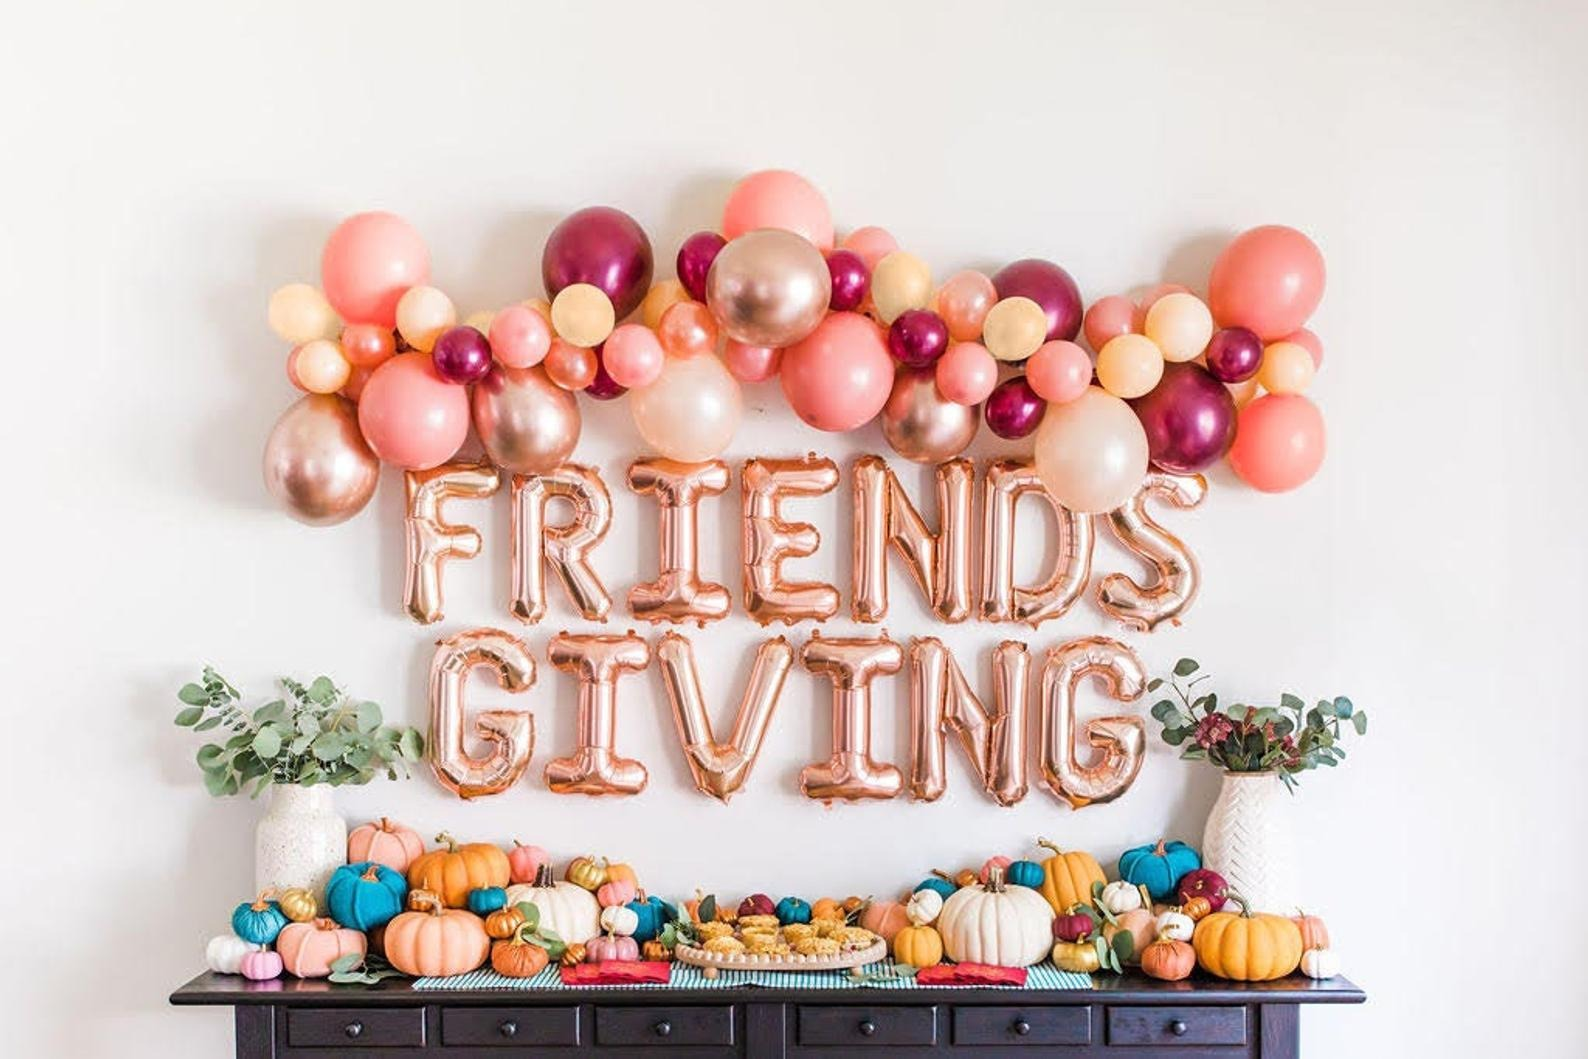 thanksgiving decorations - friends giving balloon garland in pink, white, purple and Burgundy